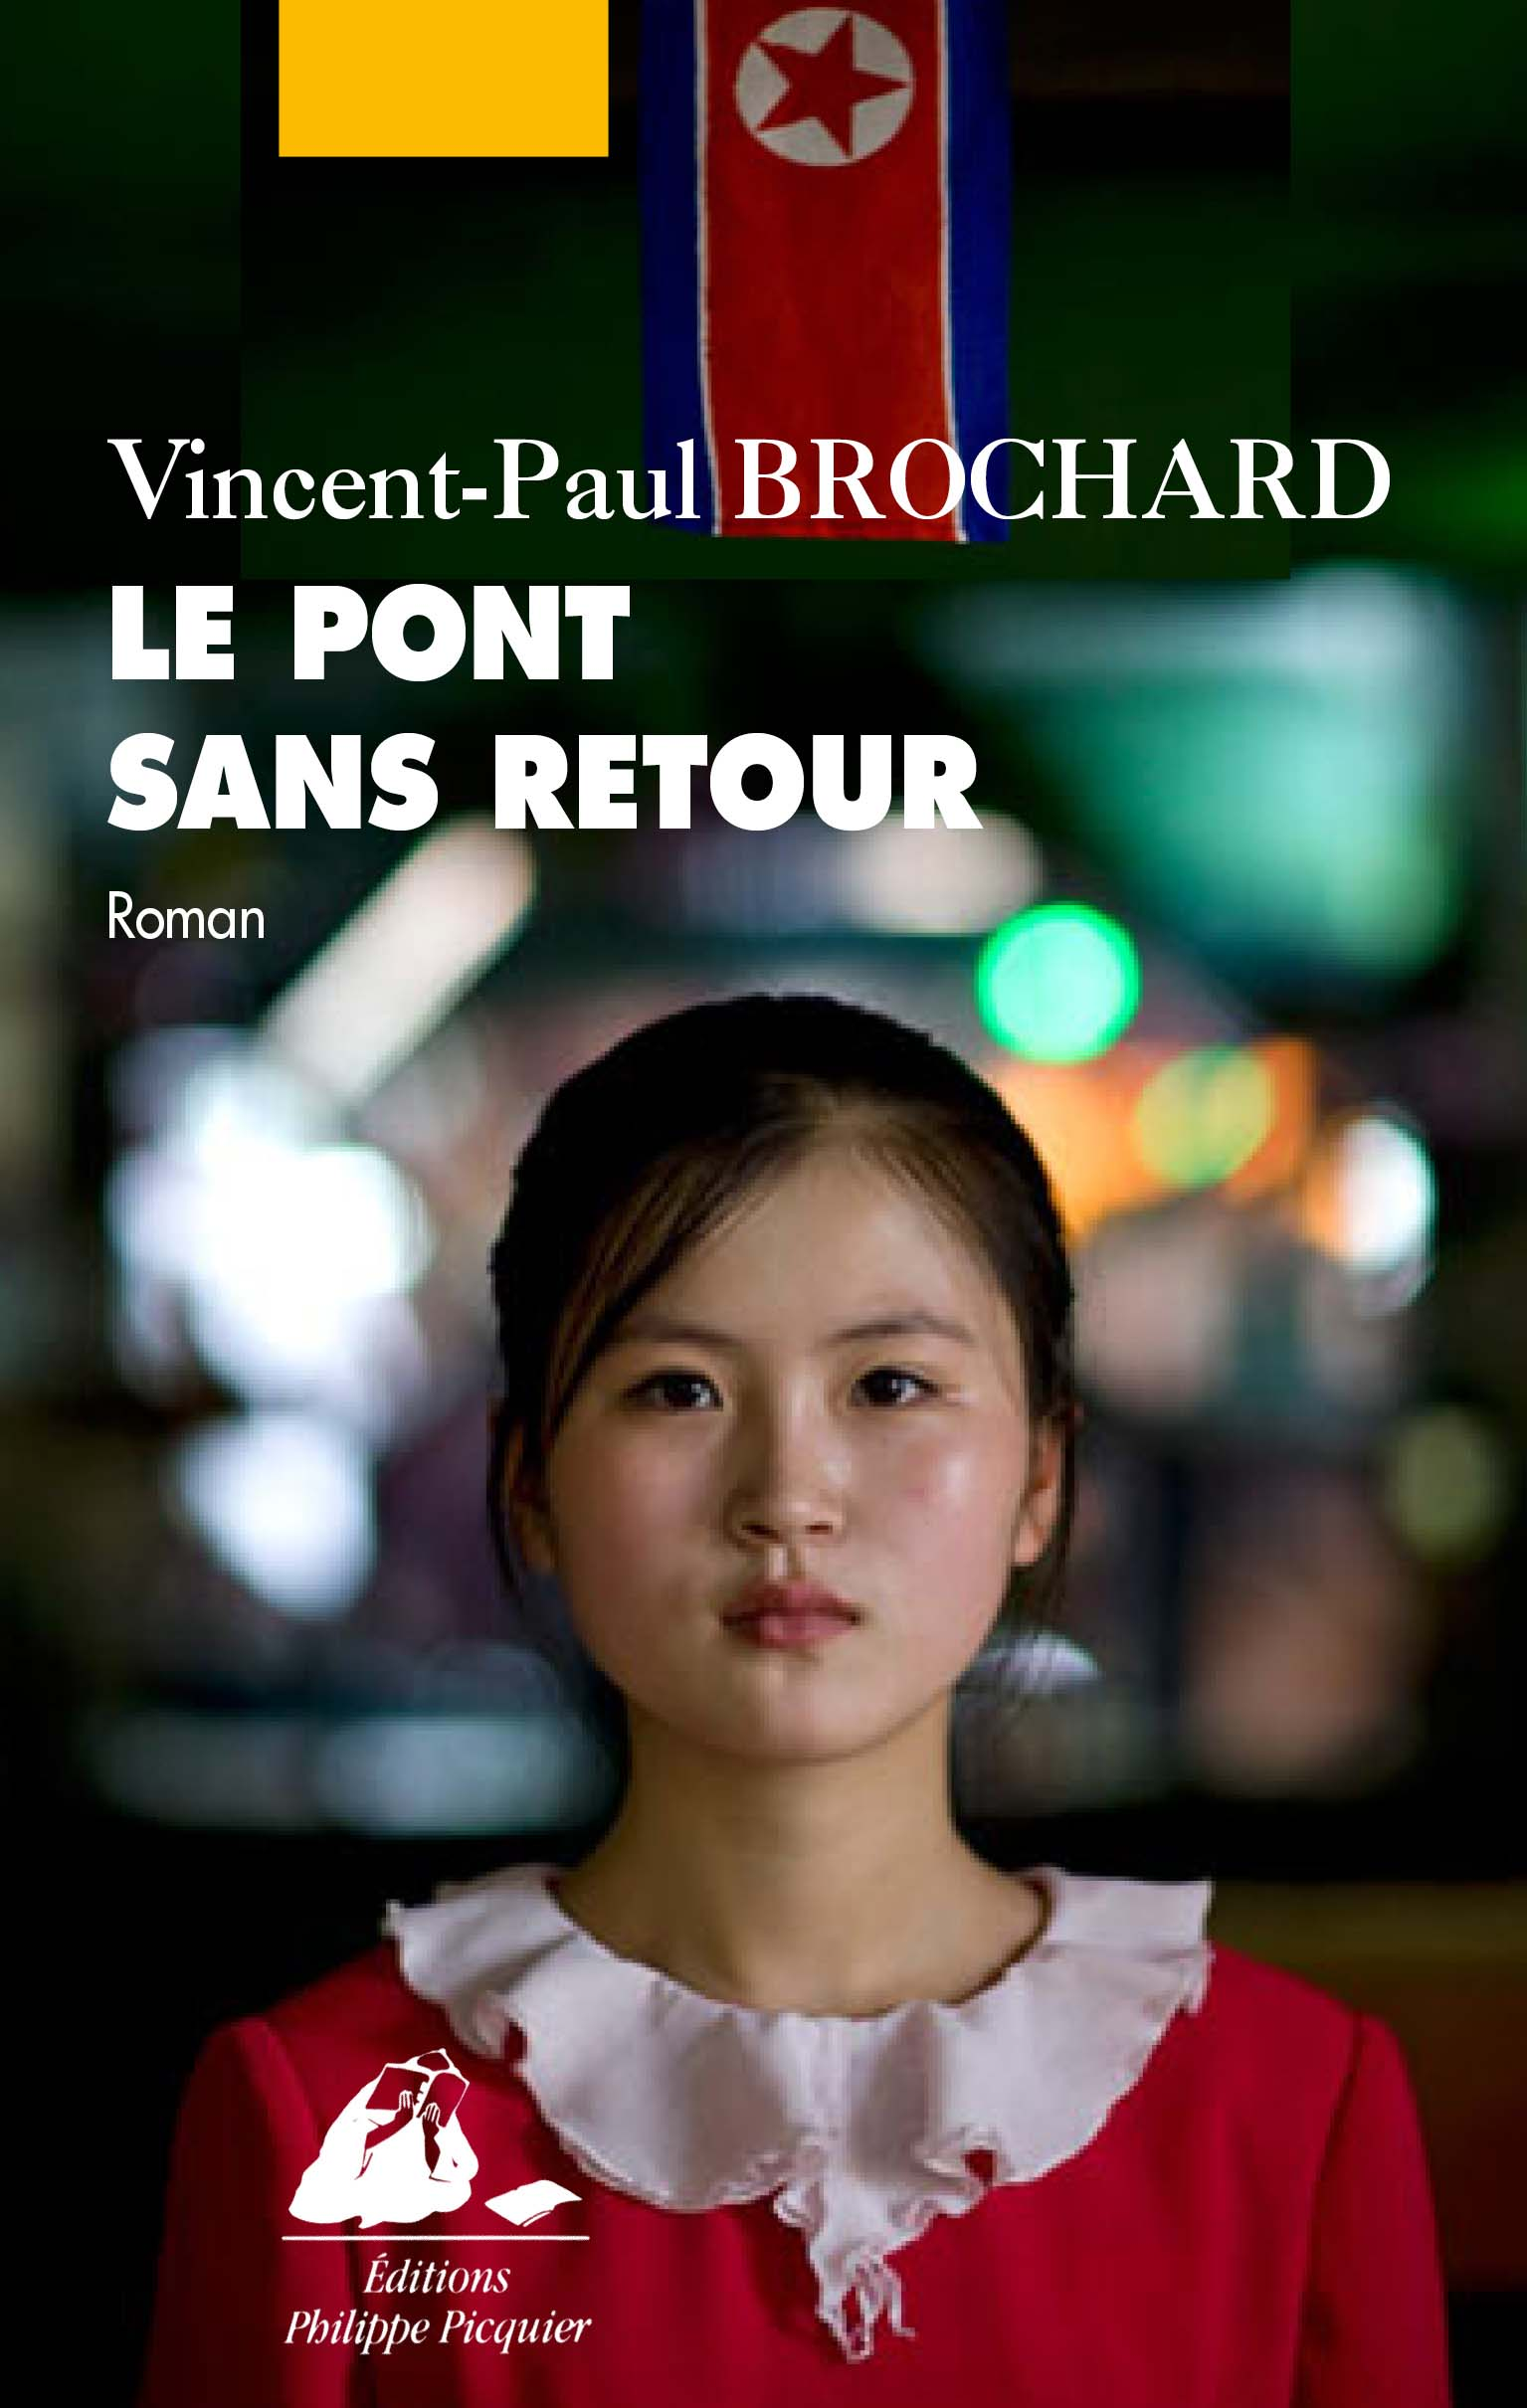 Le Pont sans retour | BROCHARD, Vincent-Paul